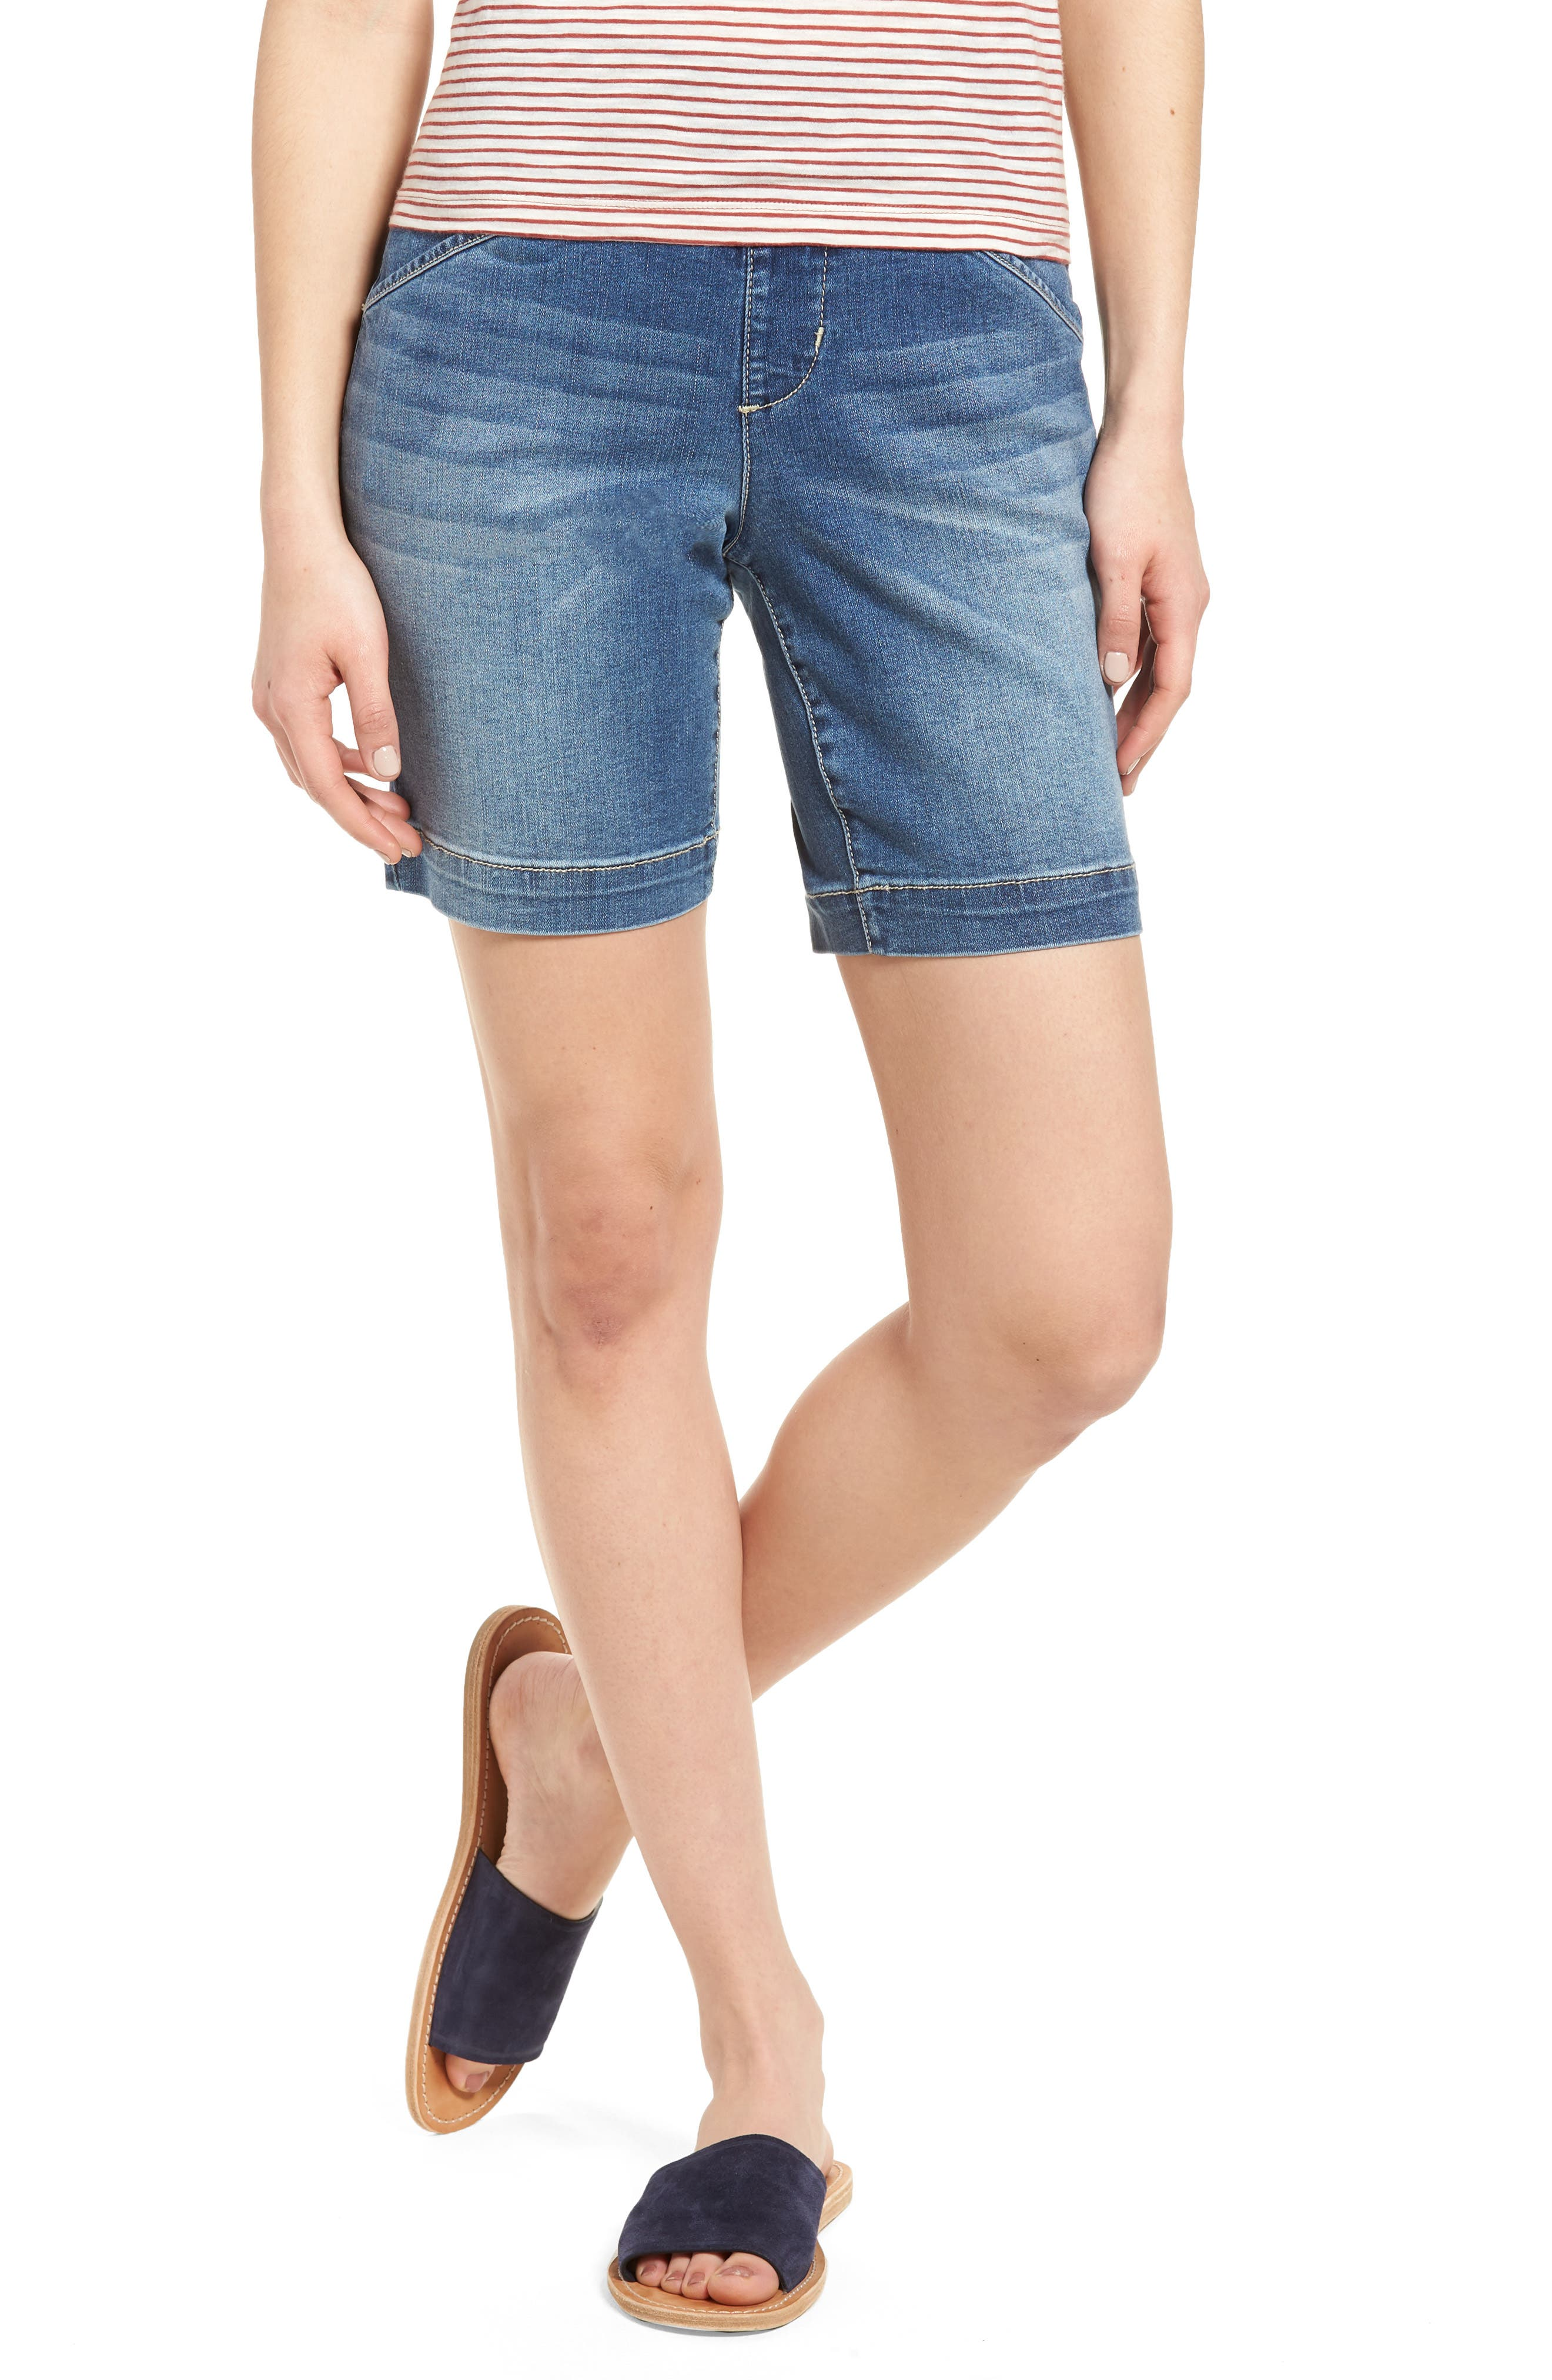 Alternate Image 1 Selected - Jag Jeans Ainsley Pull-On Stretch Denim Shorts